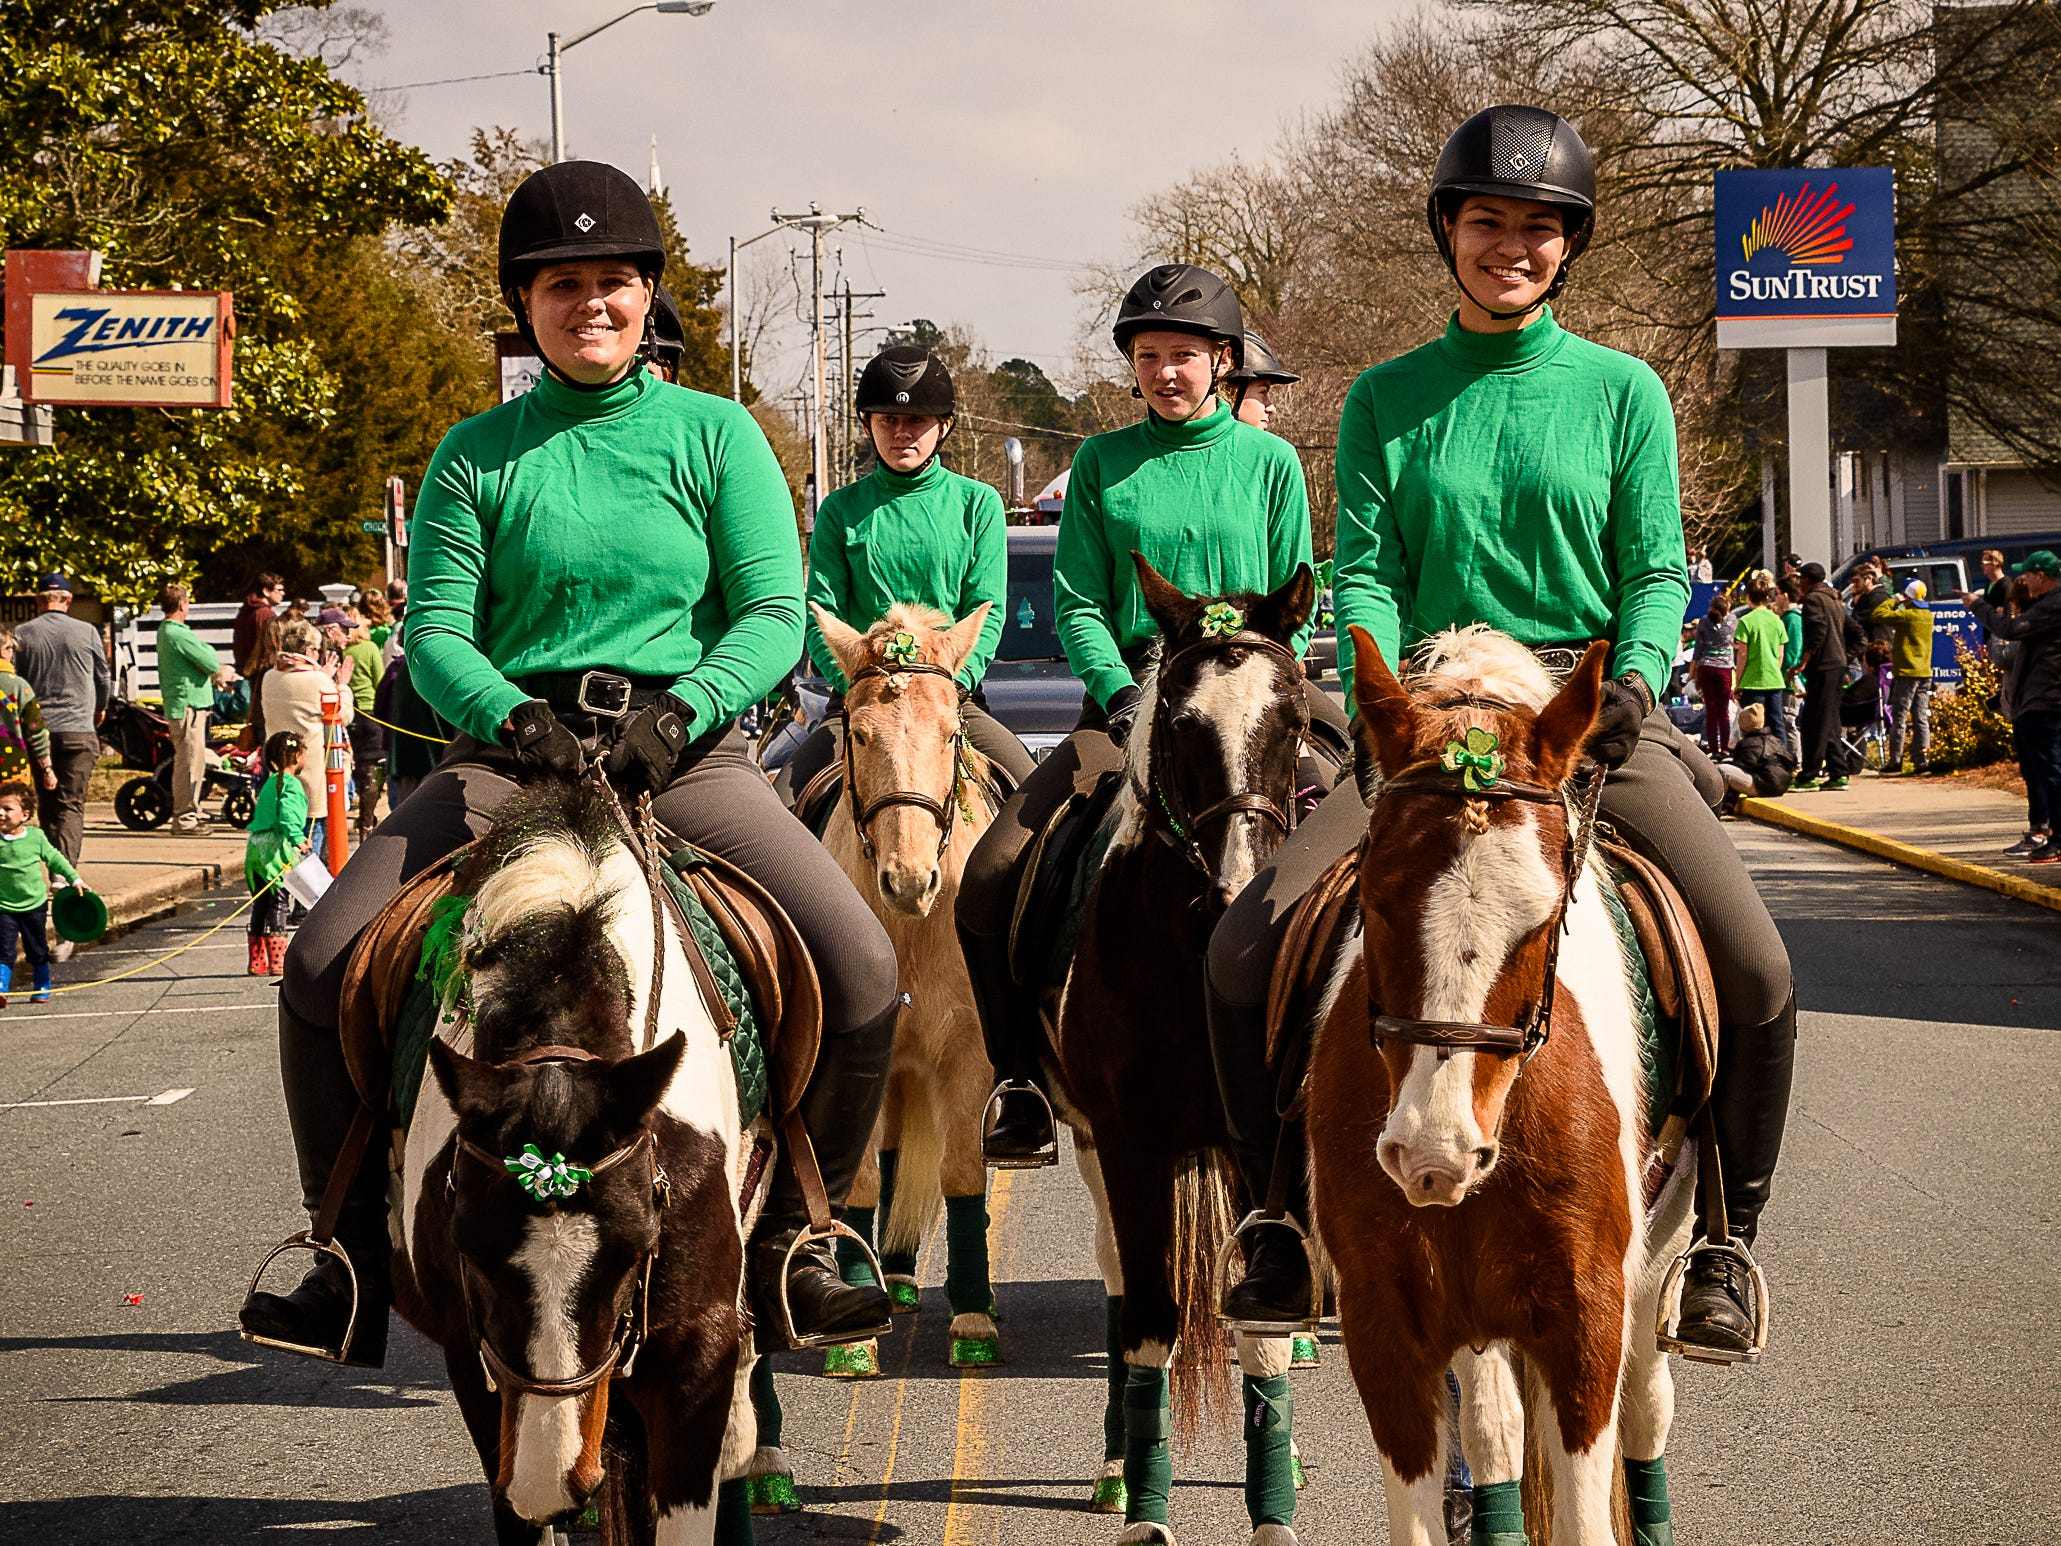 The Chincoteague Pony Drill Team line up their ponies to show off their precision drill work in the Onancock parade.